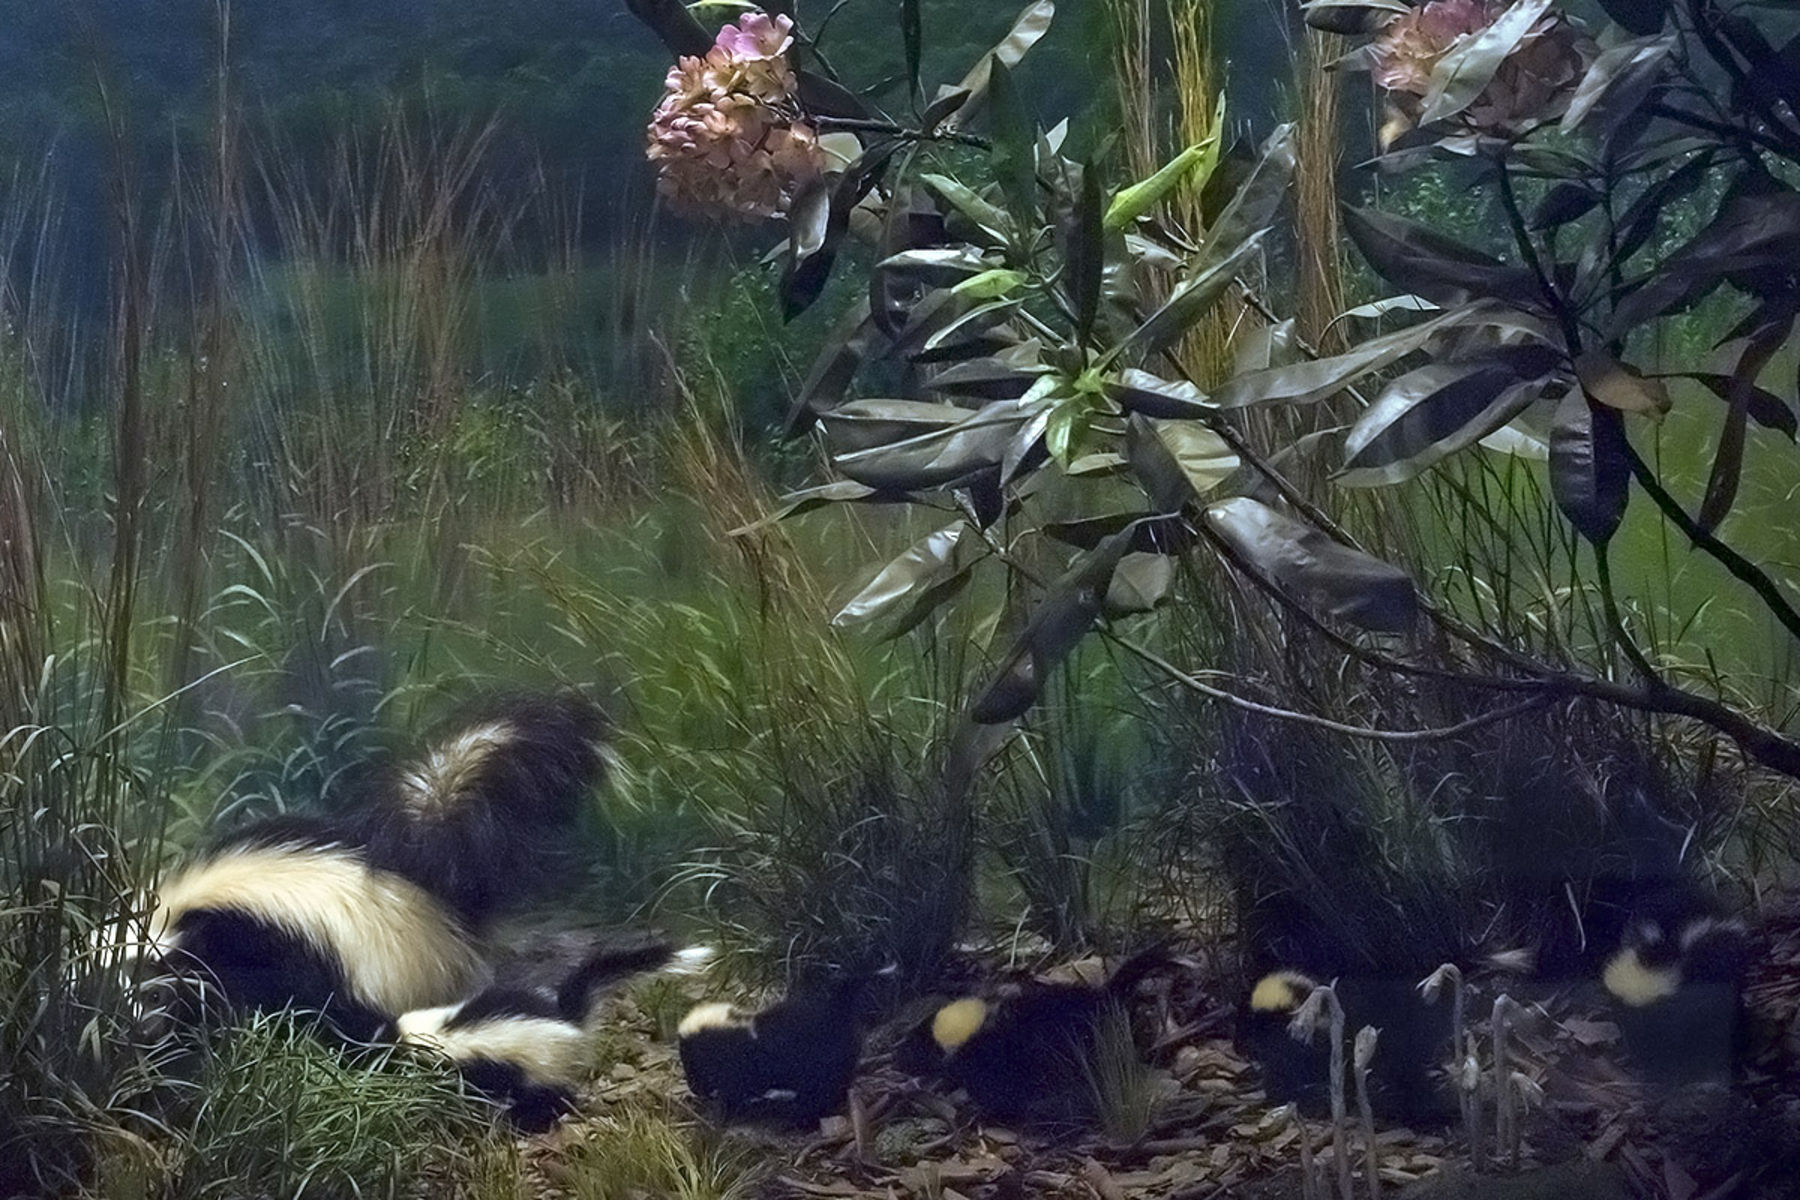 A Museum diorama displays a model of a mother skunk and a row of baby skunks following behind.